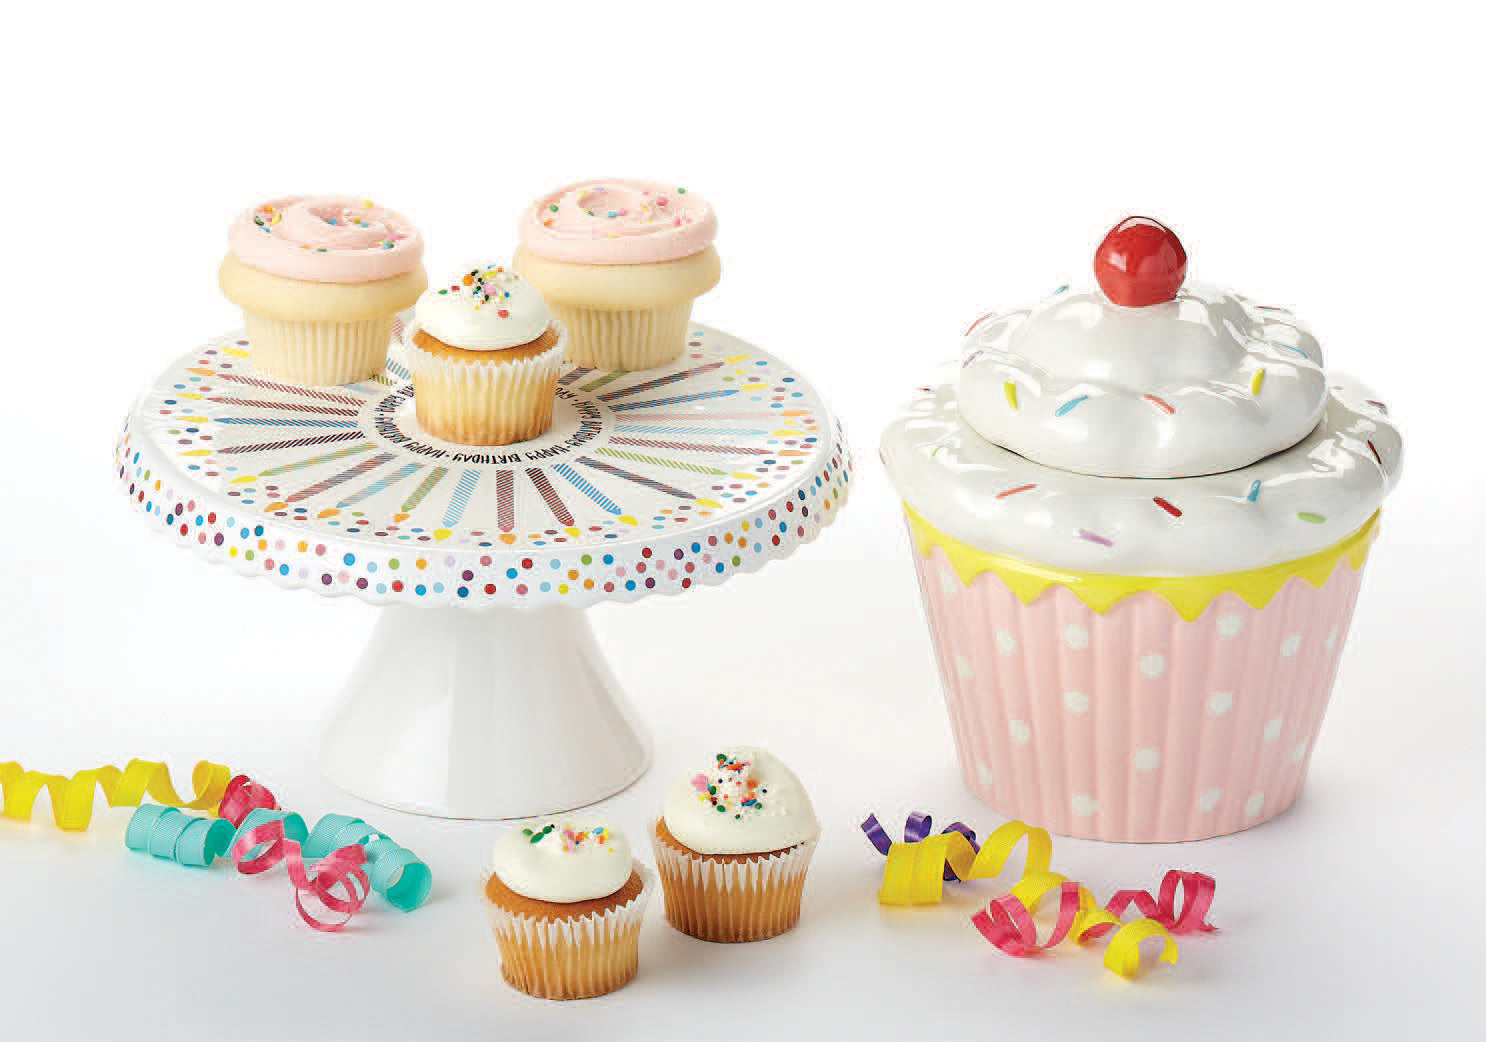 Happy Birthday Cake Stand DII Design Imports